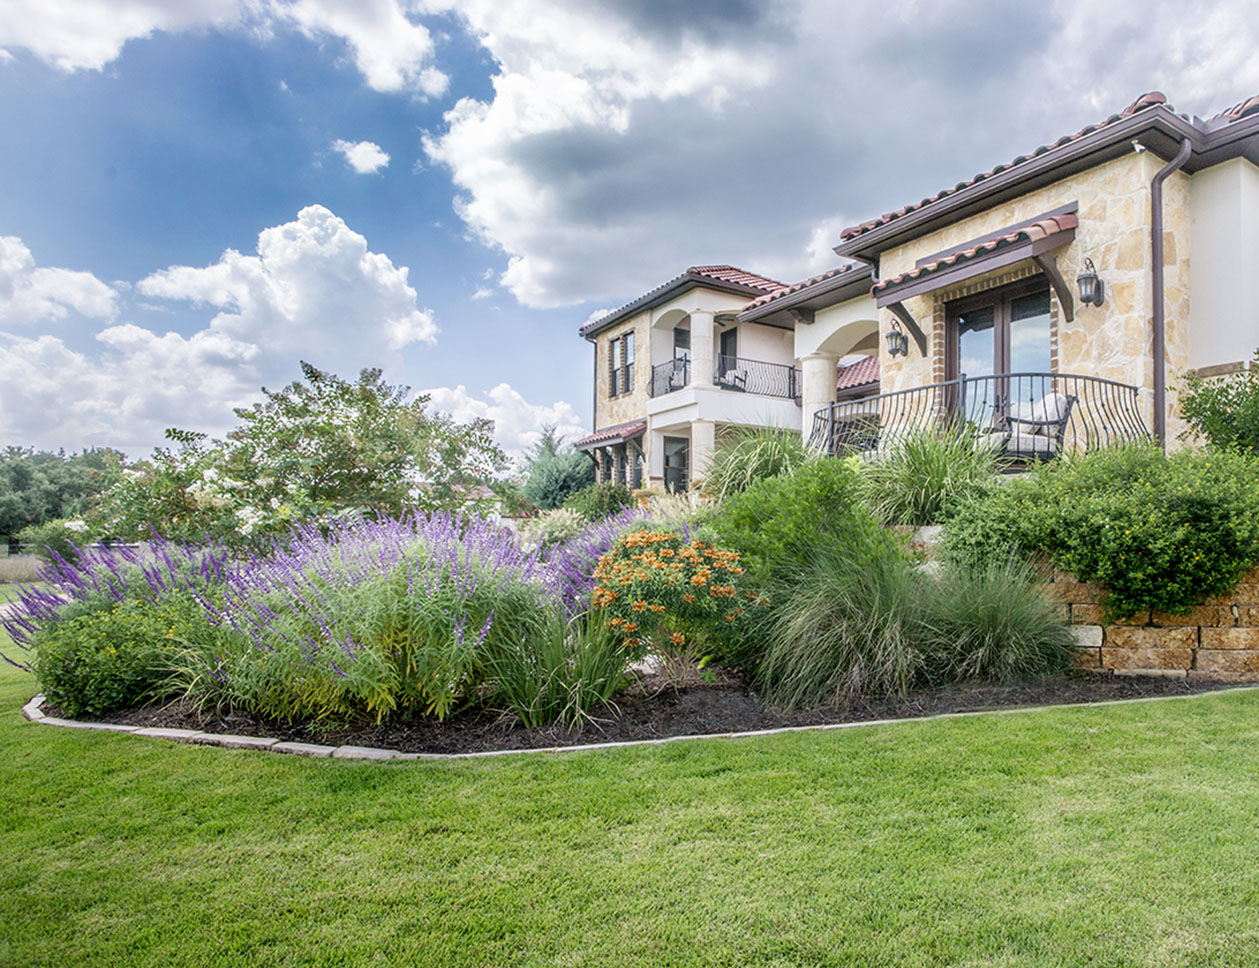 Landscape Installation services in the Texas Hill Country